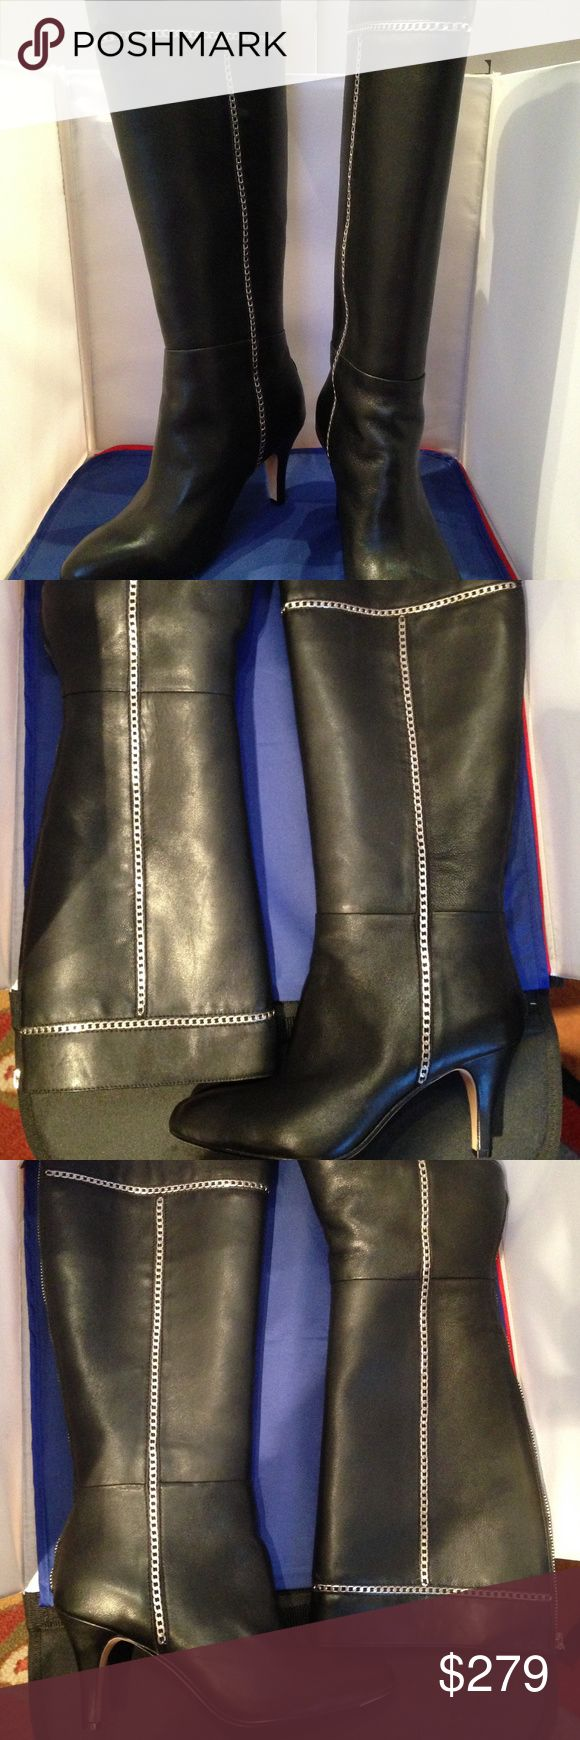 """Taryn RoseTreyes Chain-Trim Leather Boot, Black Soft napa leather boot w chain-link trim. 3"""" covered heel; 14""""H shaft; 14.3"""" circ. Back zip for ease of dress. Poron®-cushioned footbed. Rubber sole for traction. """"Treyes"""" is imported. New In Box.  Orthopedic surgeon Taryn Rose began her footwear company in 1997, after years of research on foot pain resulting from ill-fitting shoes. Rose's clinical experience & sense of style combine to create footwear ergonomically designed for a comfortable…"""